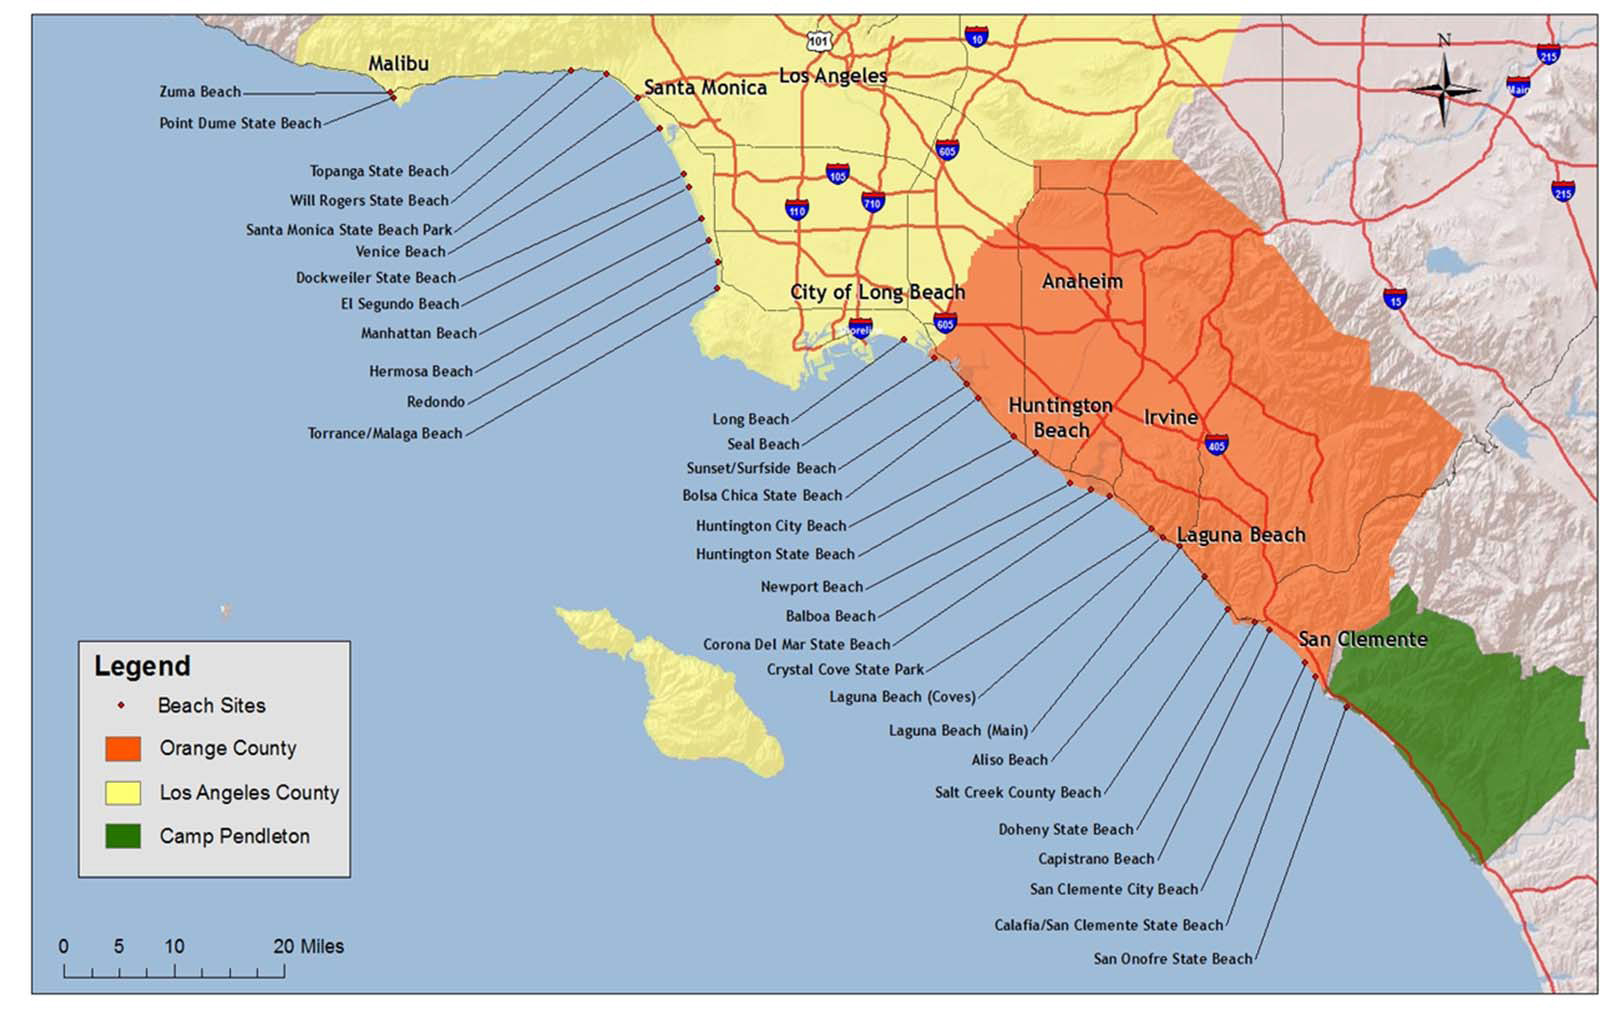 Map Of Southern Cali California State Map California Coast Map - Southern California Beach Towns Map